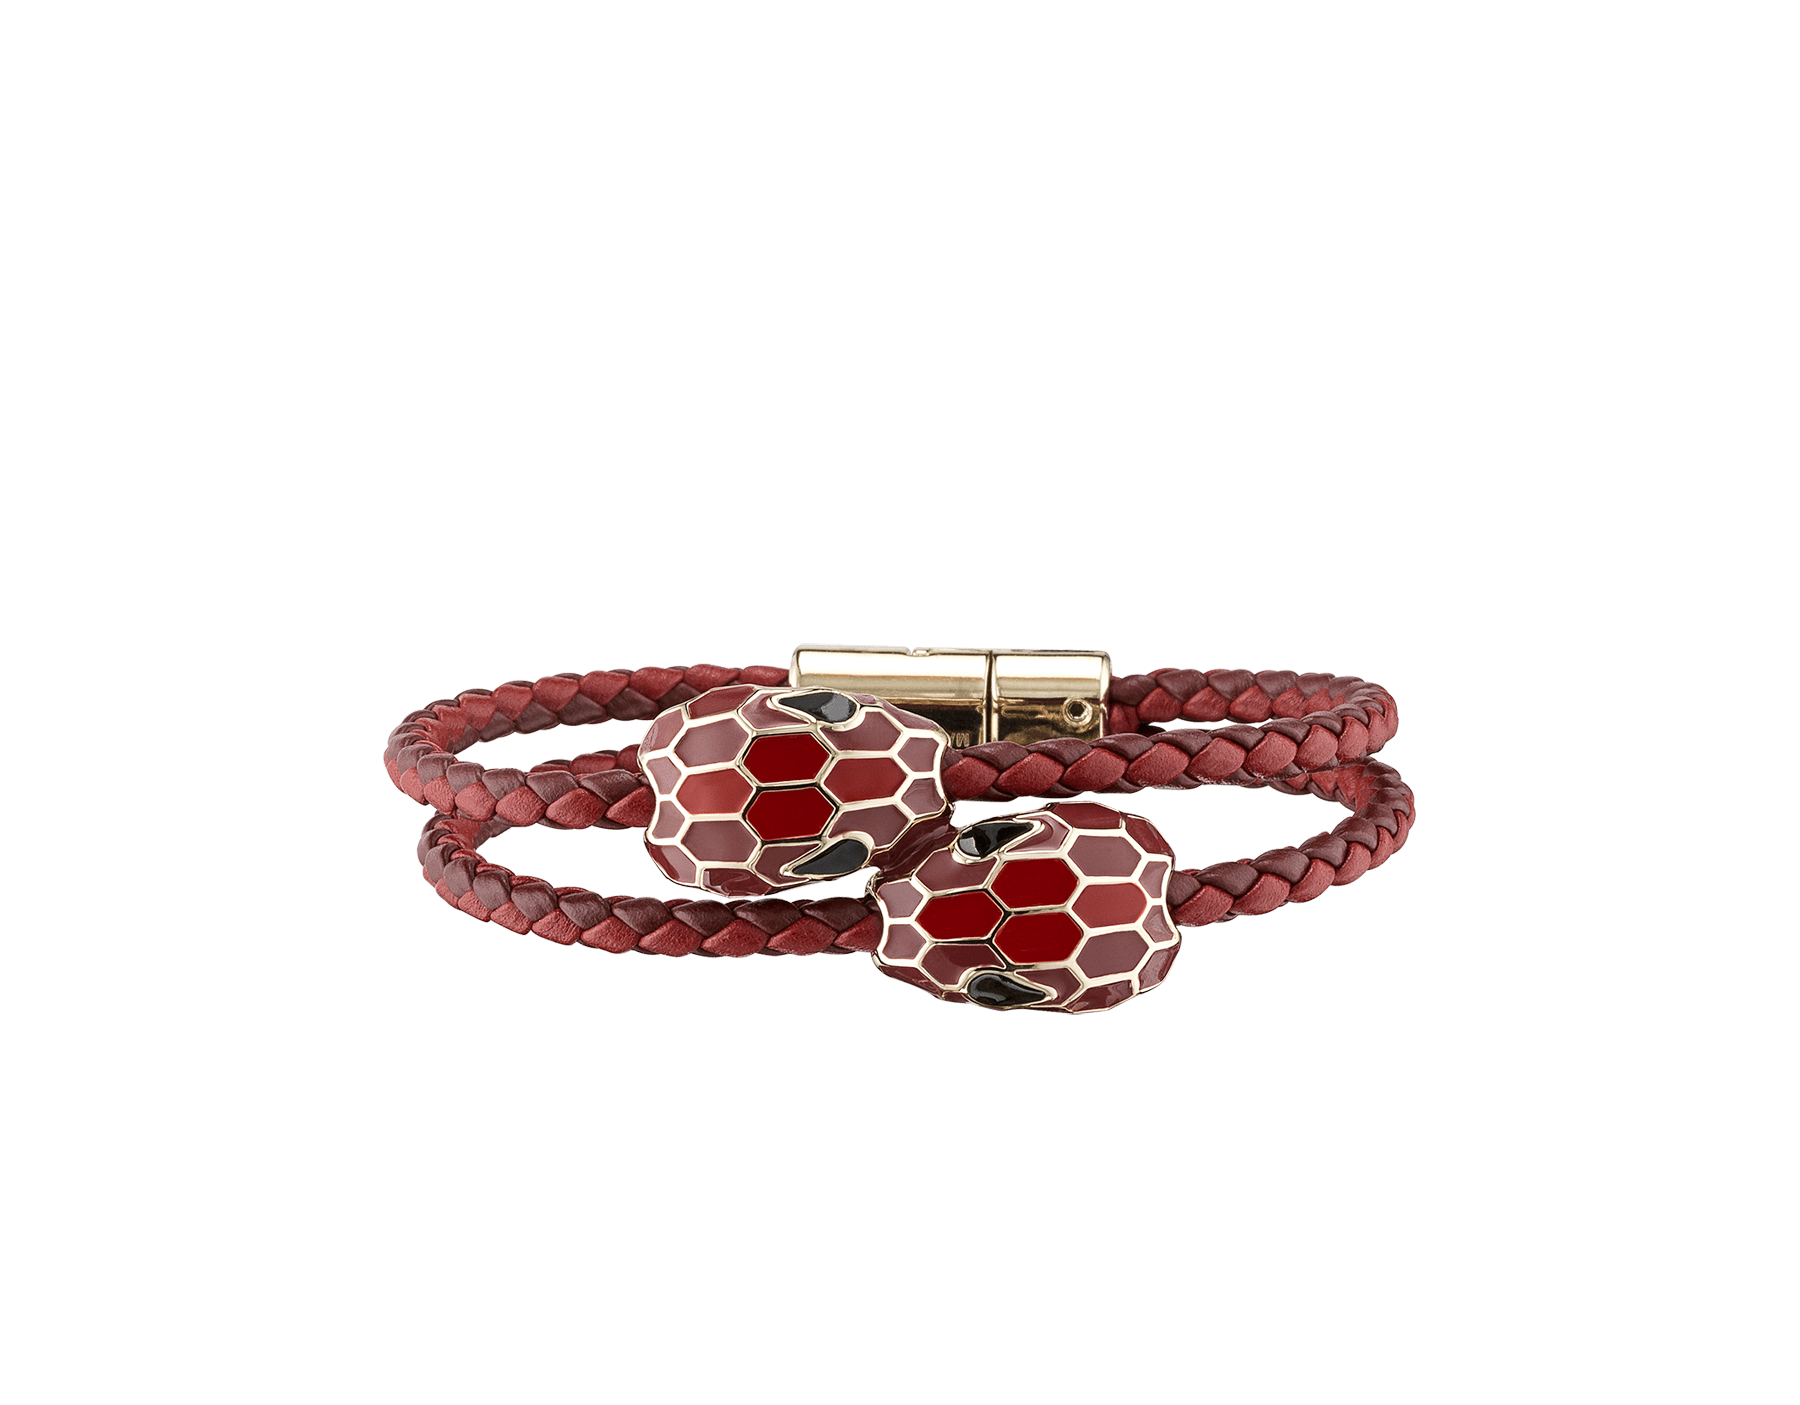 Serpenti Forever double braid bracelet in ruby red and carmine jasper woven calf leather with a double snakehead décor in ruby red and carmine jasper enamel. NewDoubleBraid-WCL-RRCJ image 1